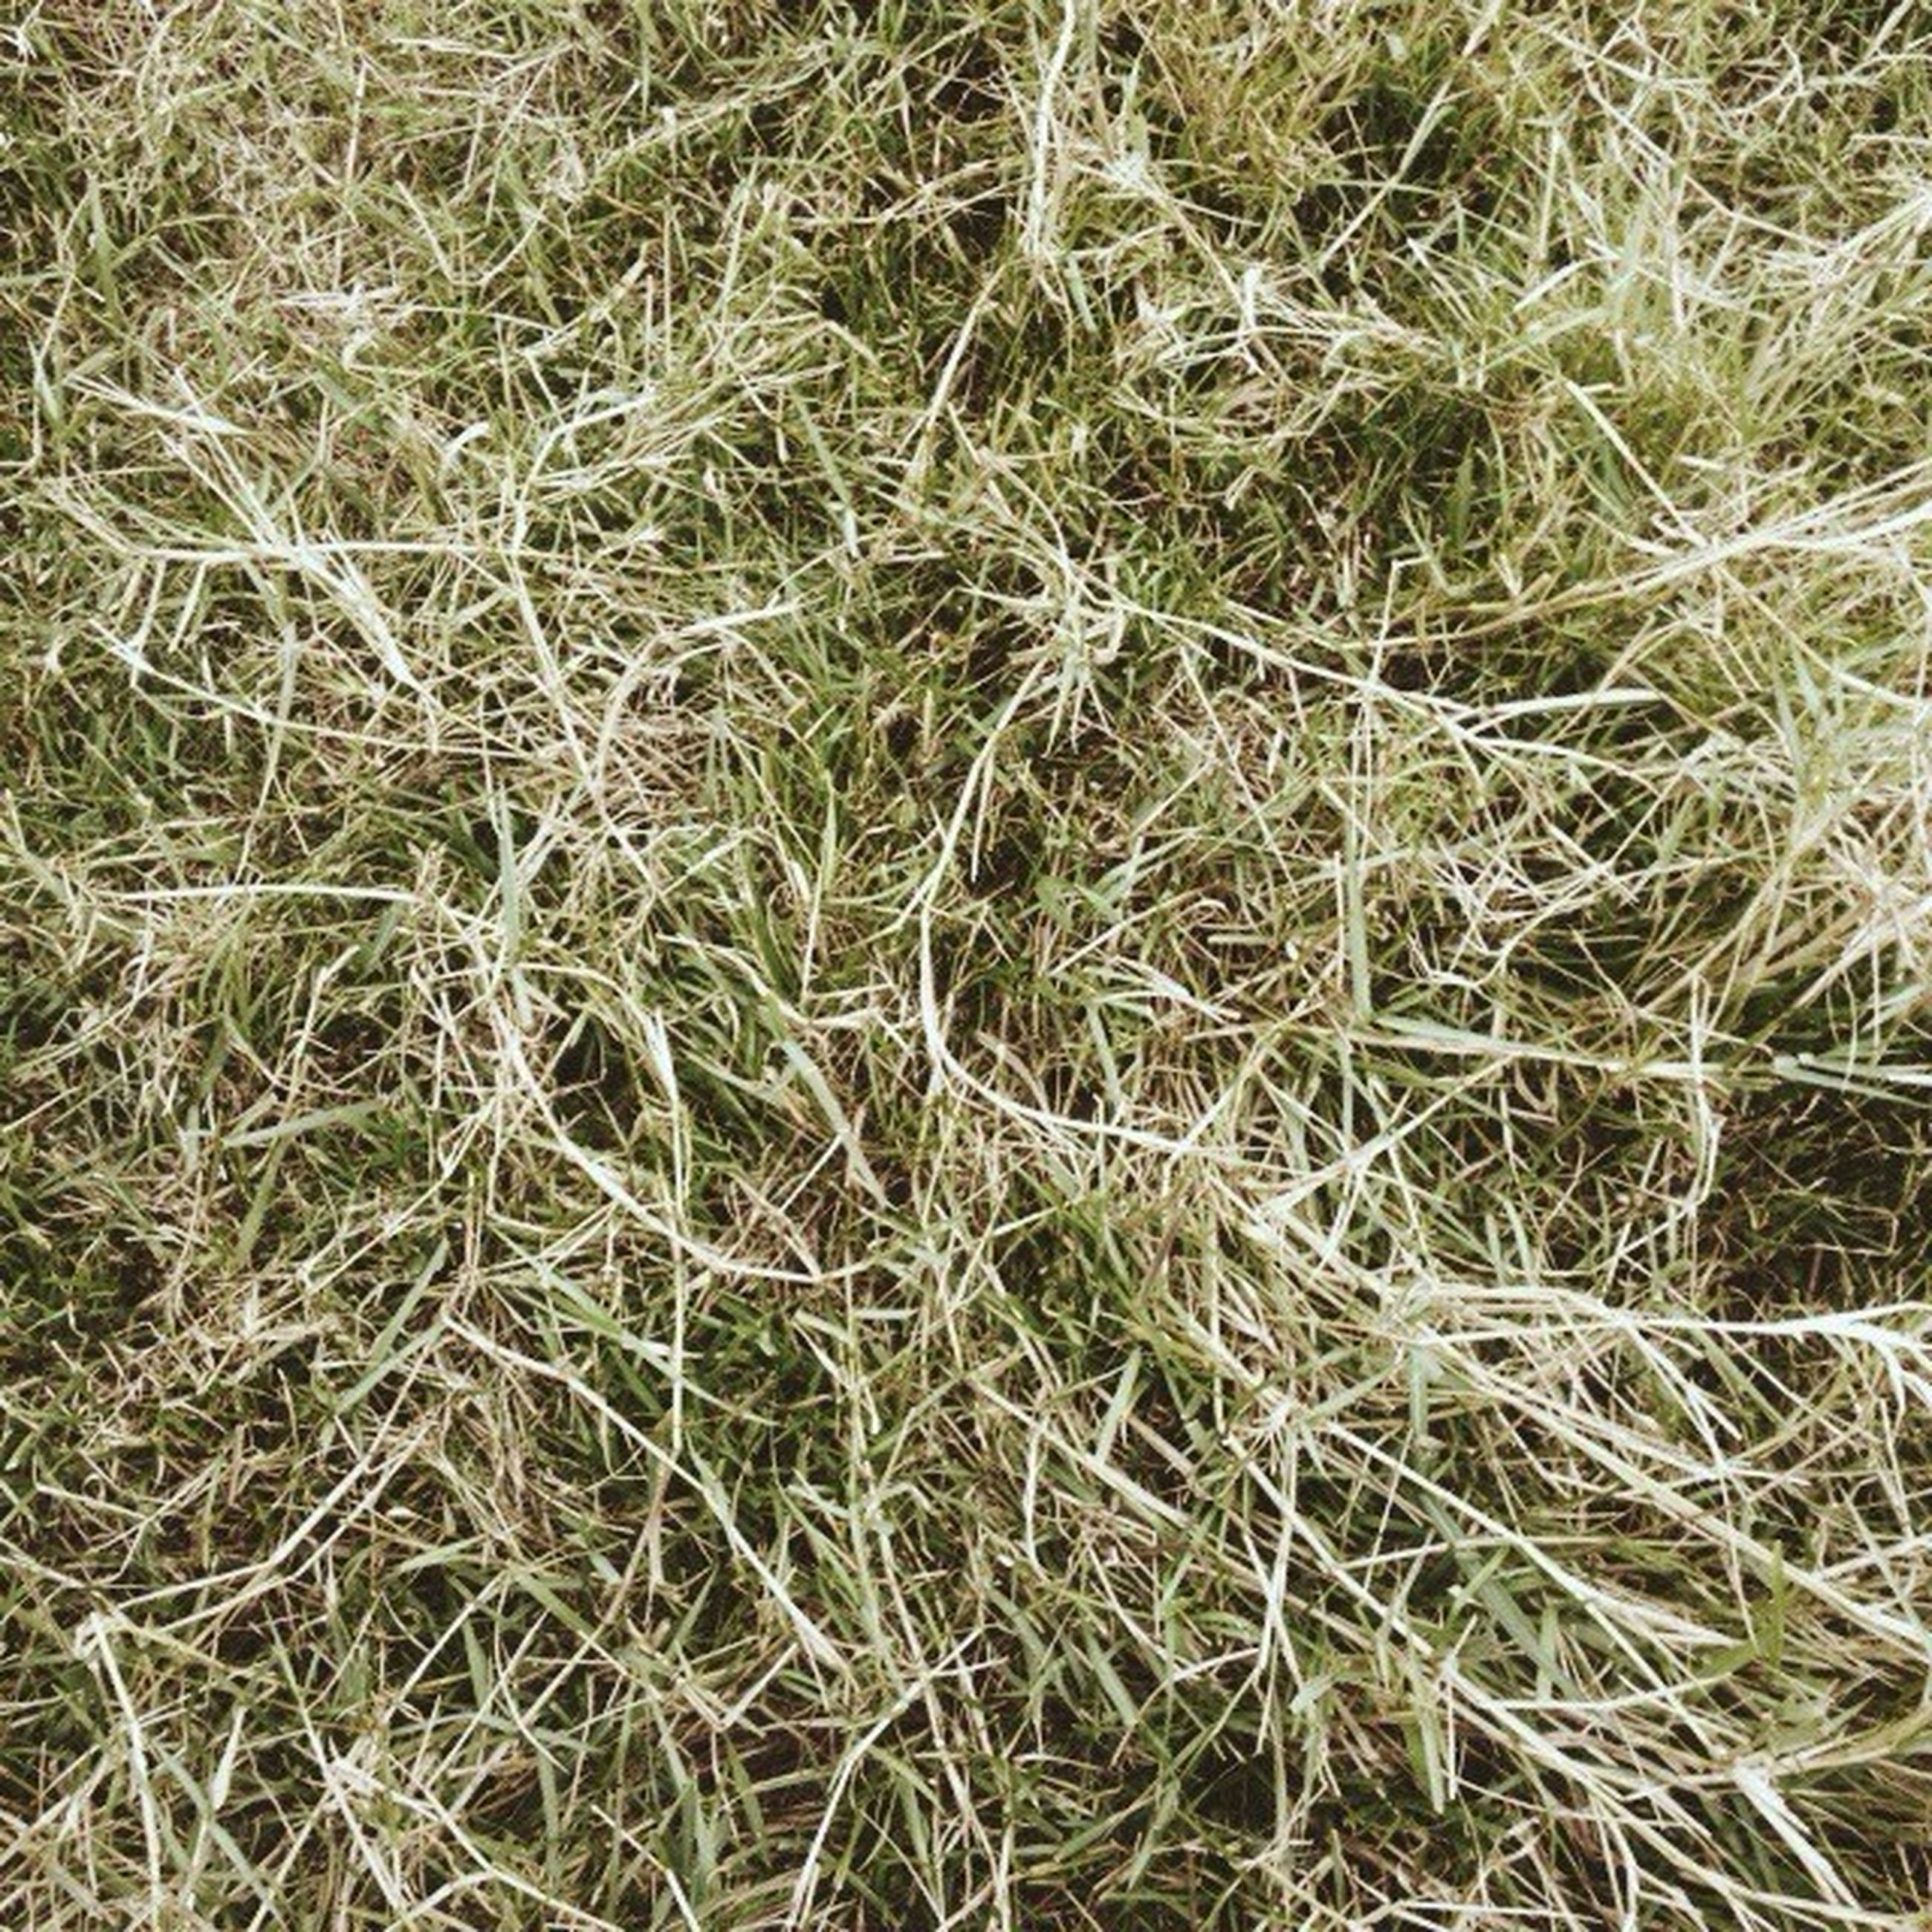 grass, field, high angle view, dry, growth, plant, nature, day, full frame, backgrounds, outdoors, no people, tranquility, rural scene, agriculture, grassy, farm, close-up, sunlight, hay